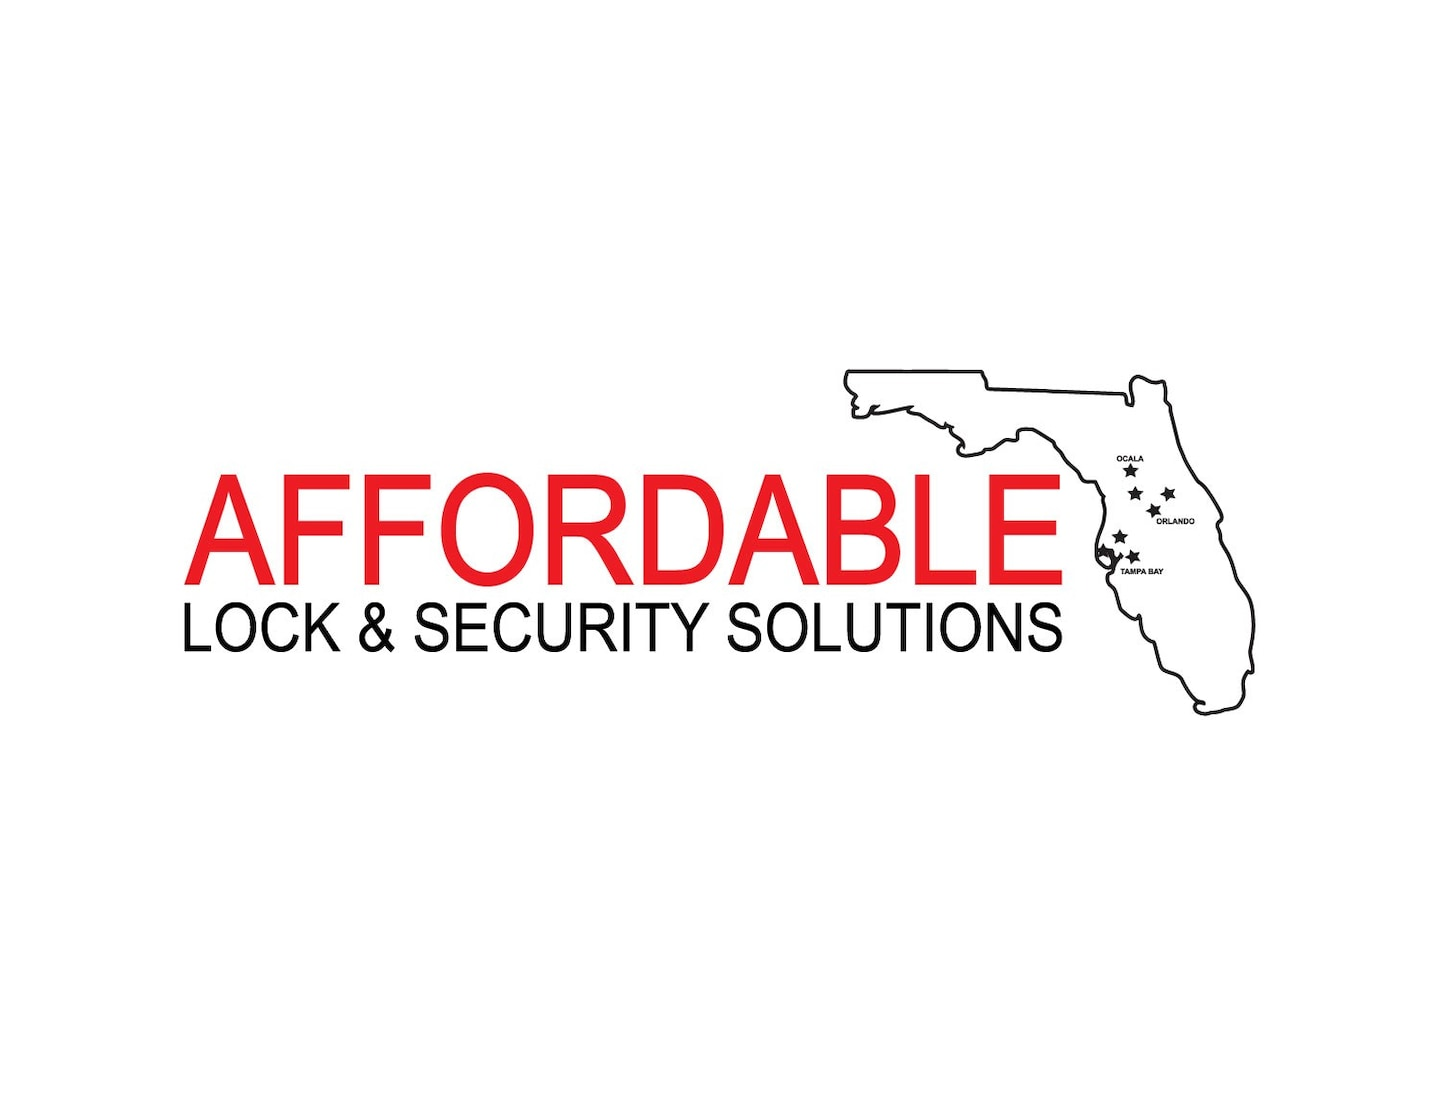 Affordable Lock & Security Solutions